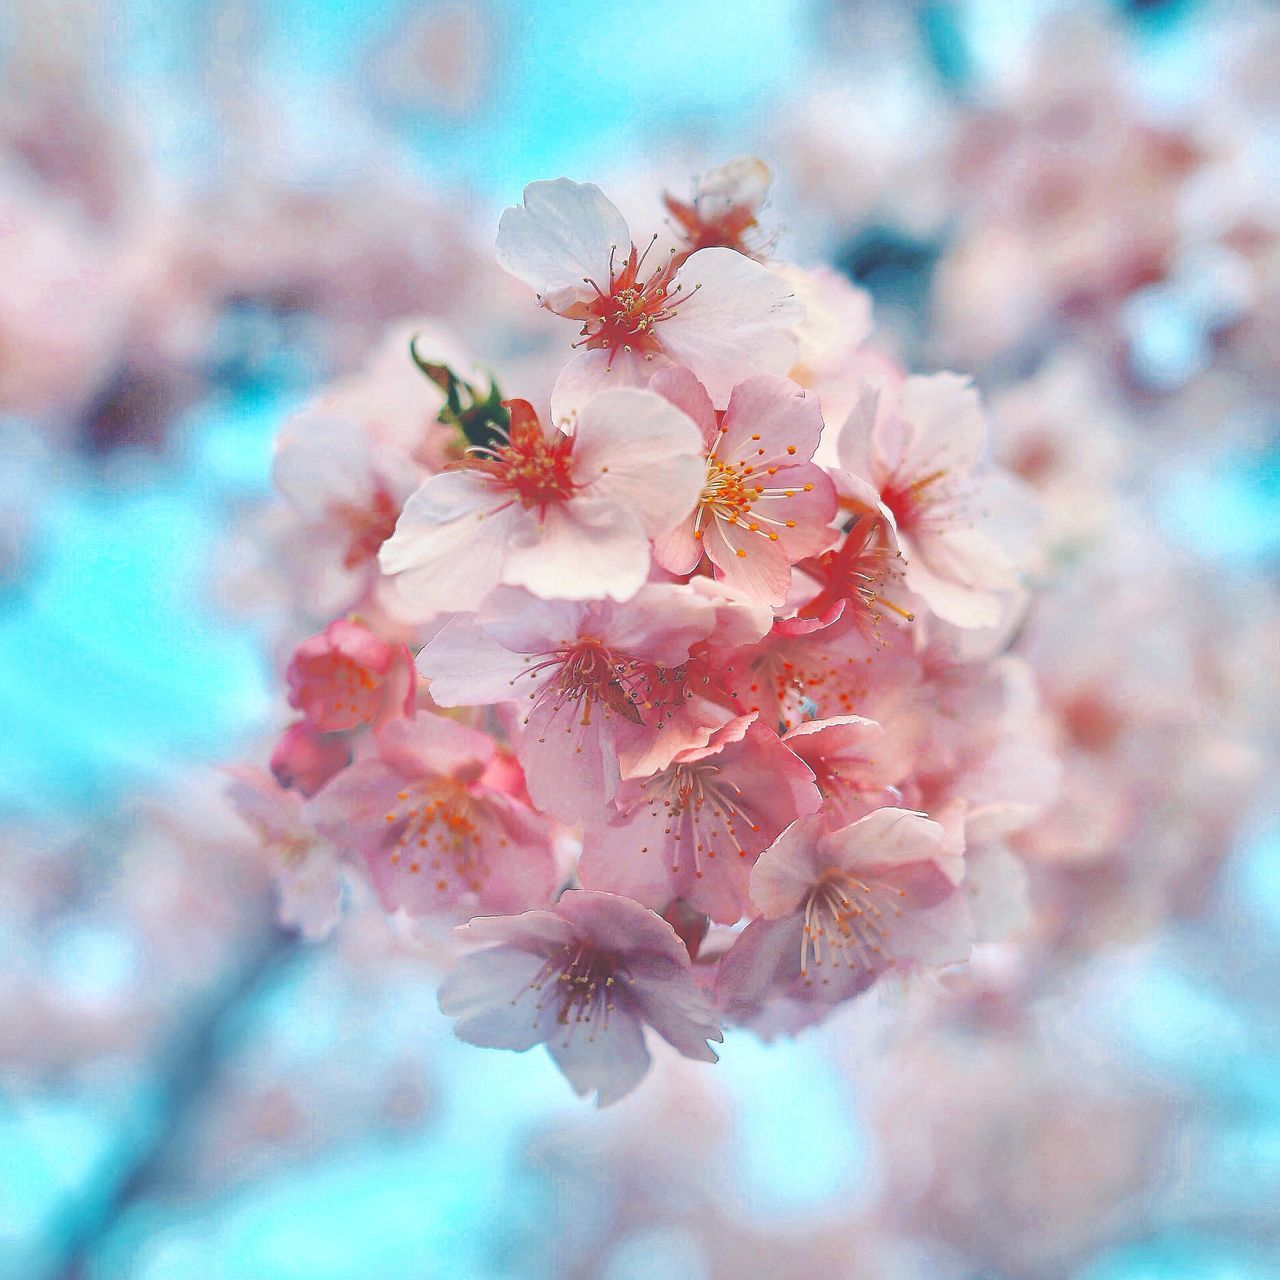 Flower Fragility Nature Beauty In Nature Growth Freshness Petal Close-up Outdoors Day Flower Head Springtime Pink Color No People Stamen Tree Blossom Sky Plum Blossom Pistil